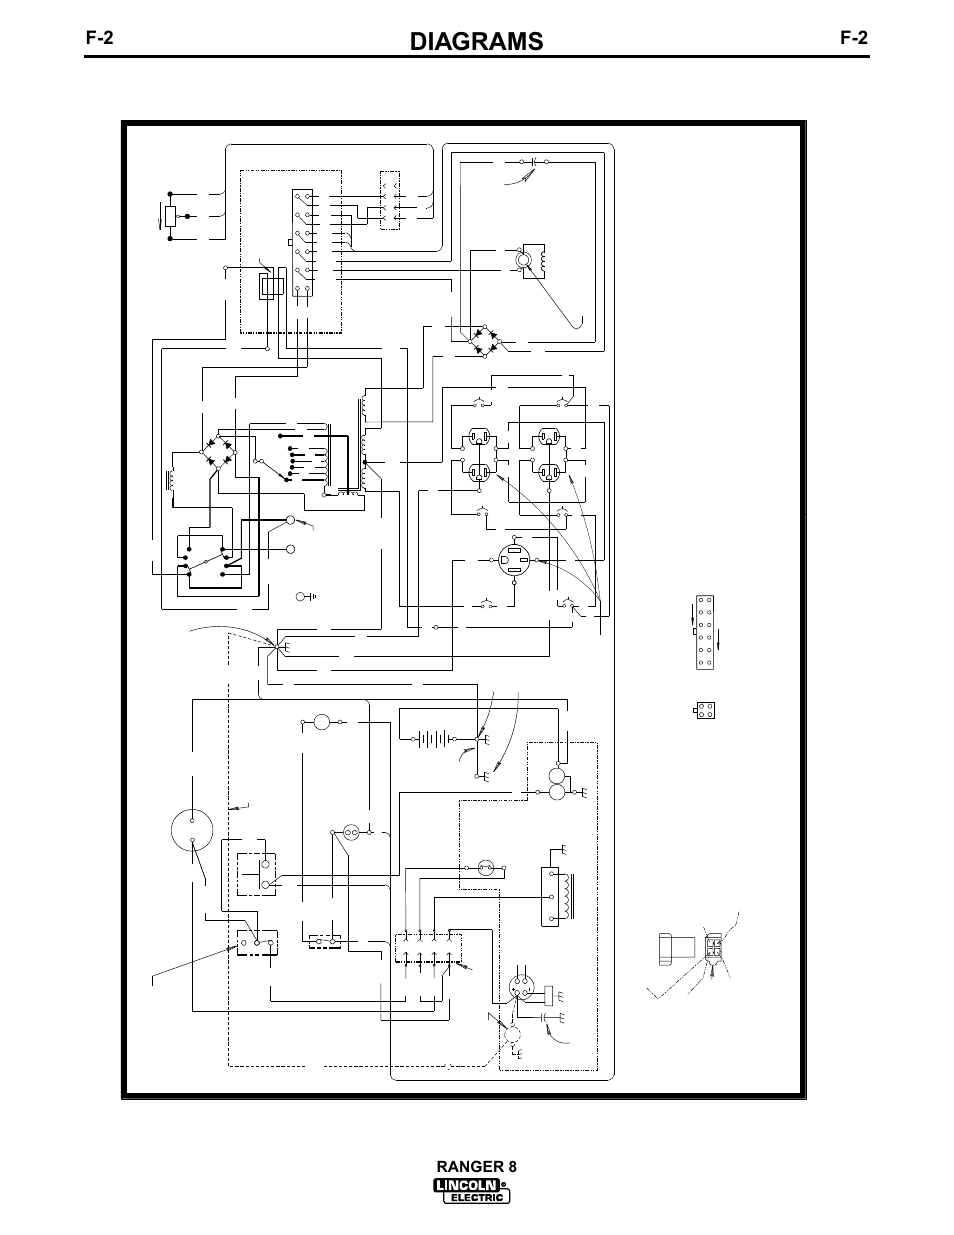 Electrical Schematic Symbols Chart On 8 Pin Dpdt Relay Wiring Diagram